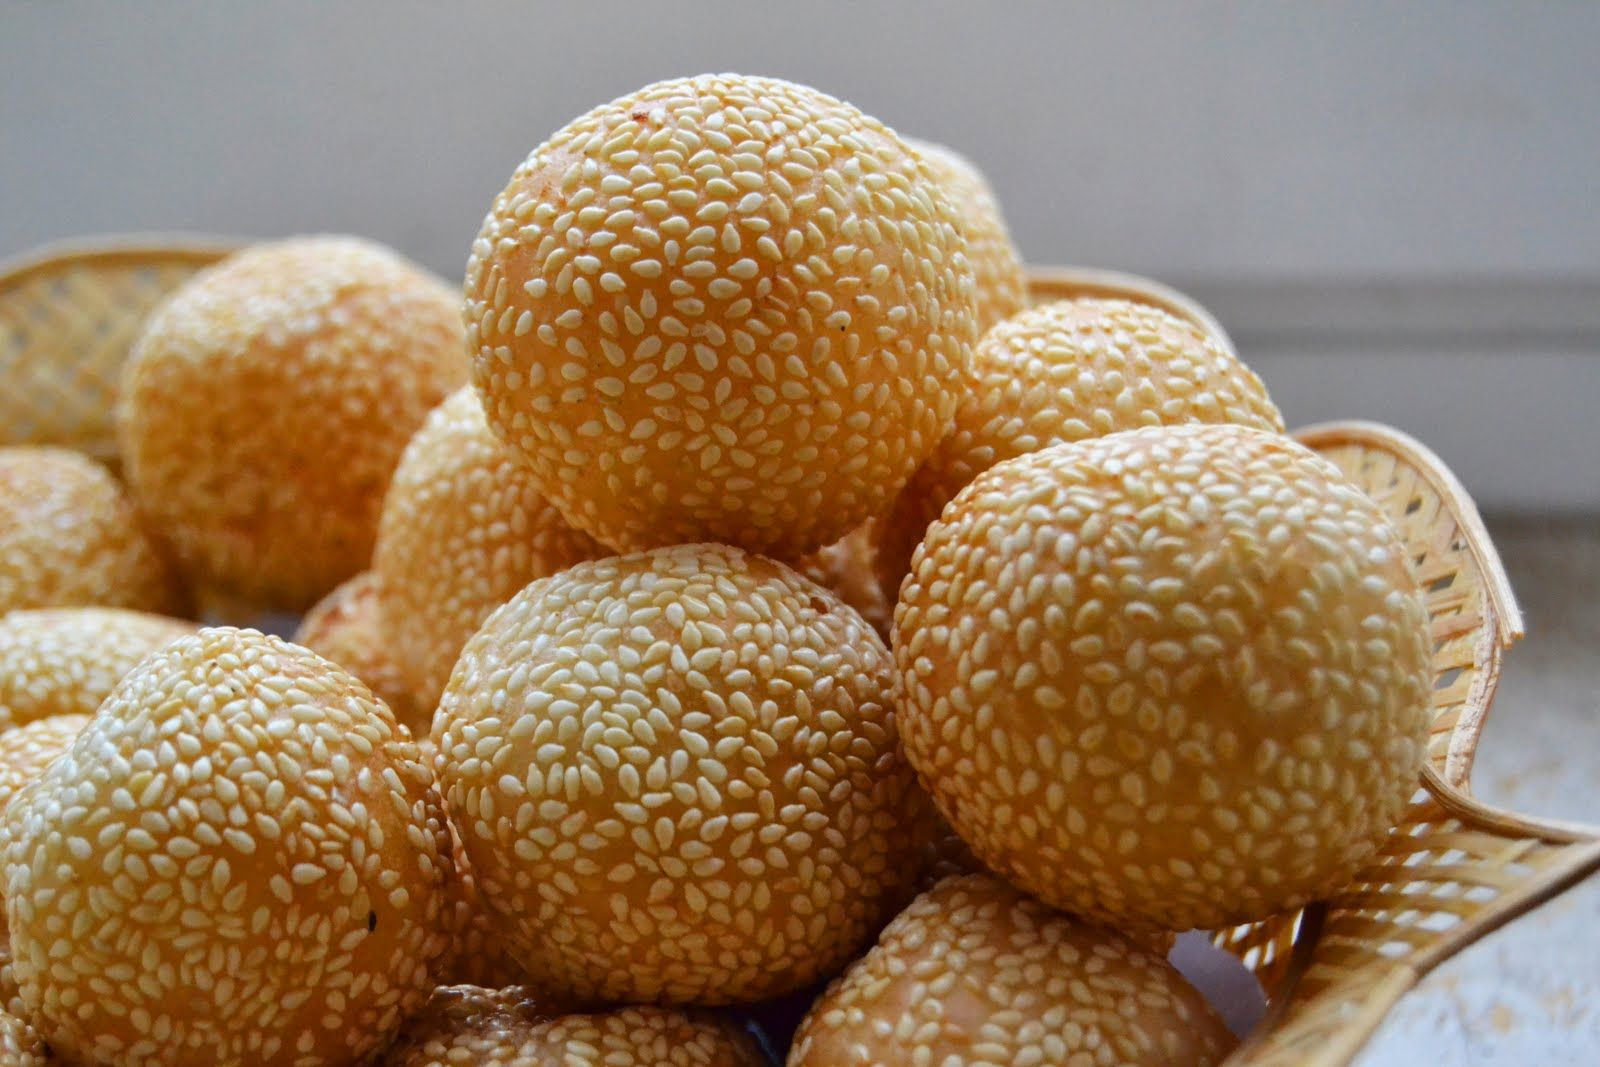 Onde onde made of glutinous rice flour stuffed with usually made of glutinous rice flour stuffed with usually sweet ccuart Images